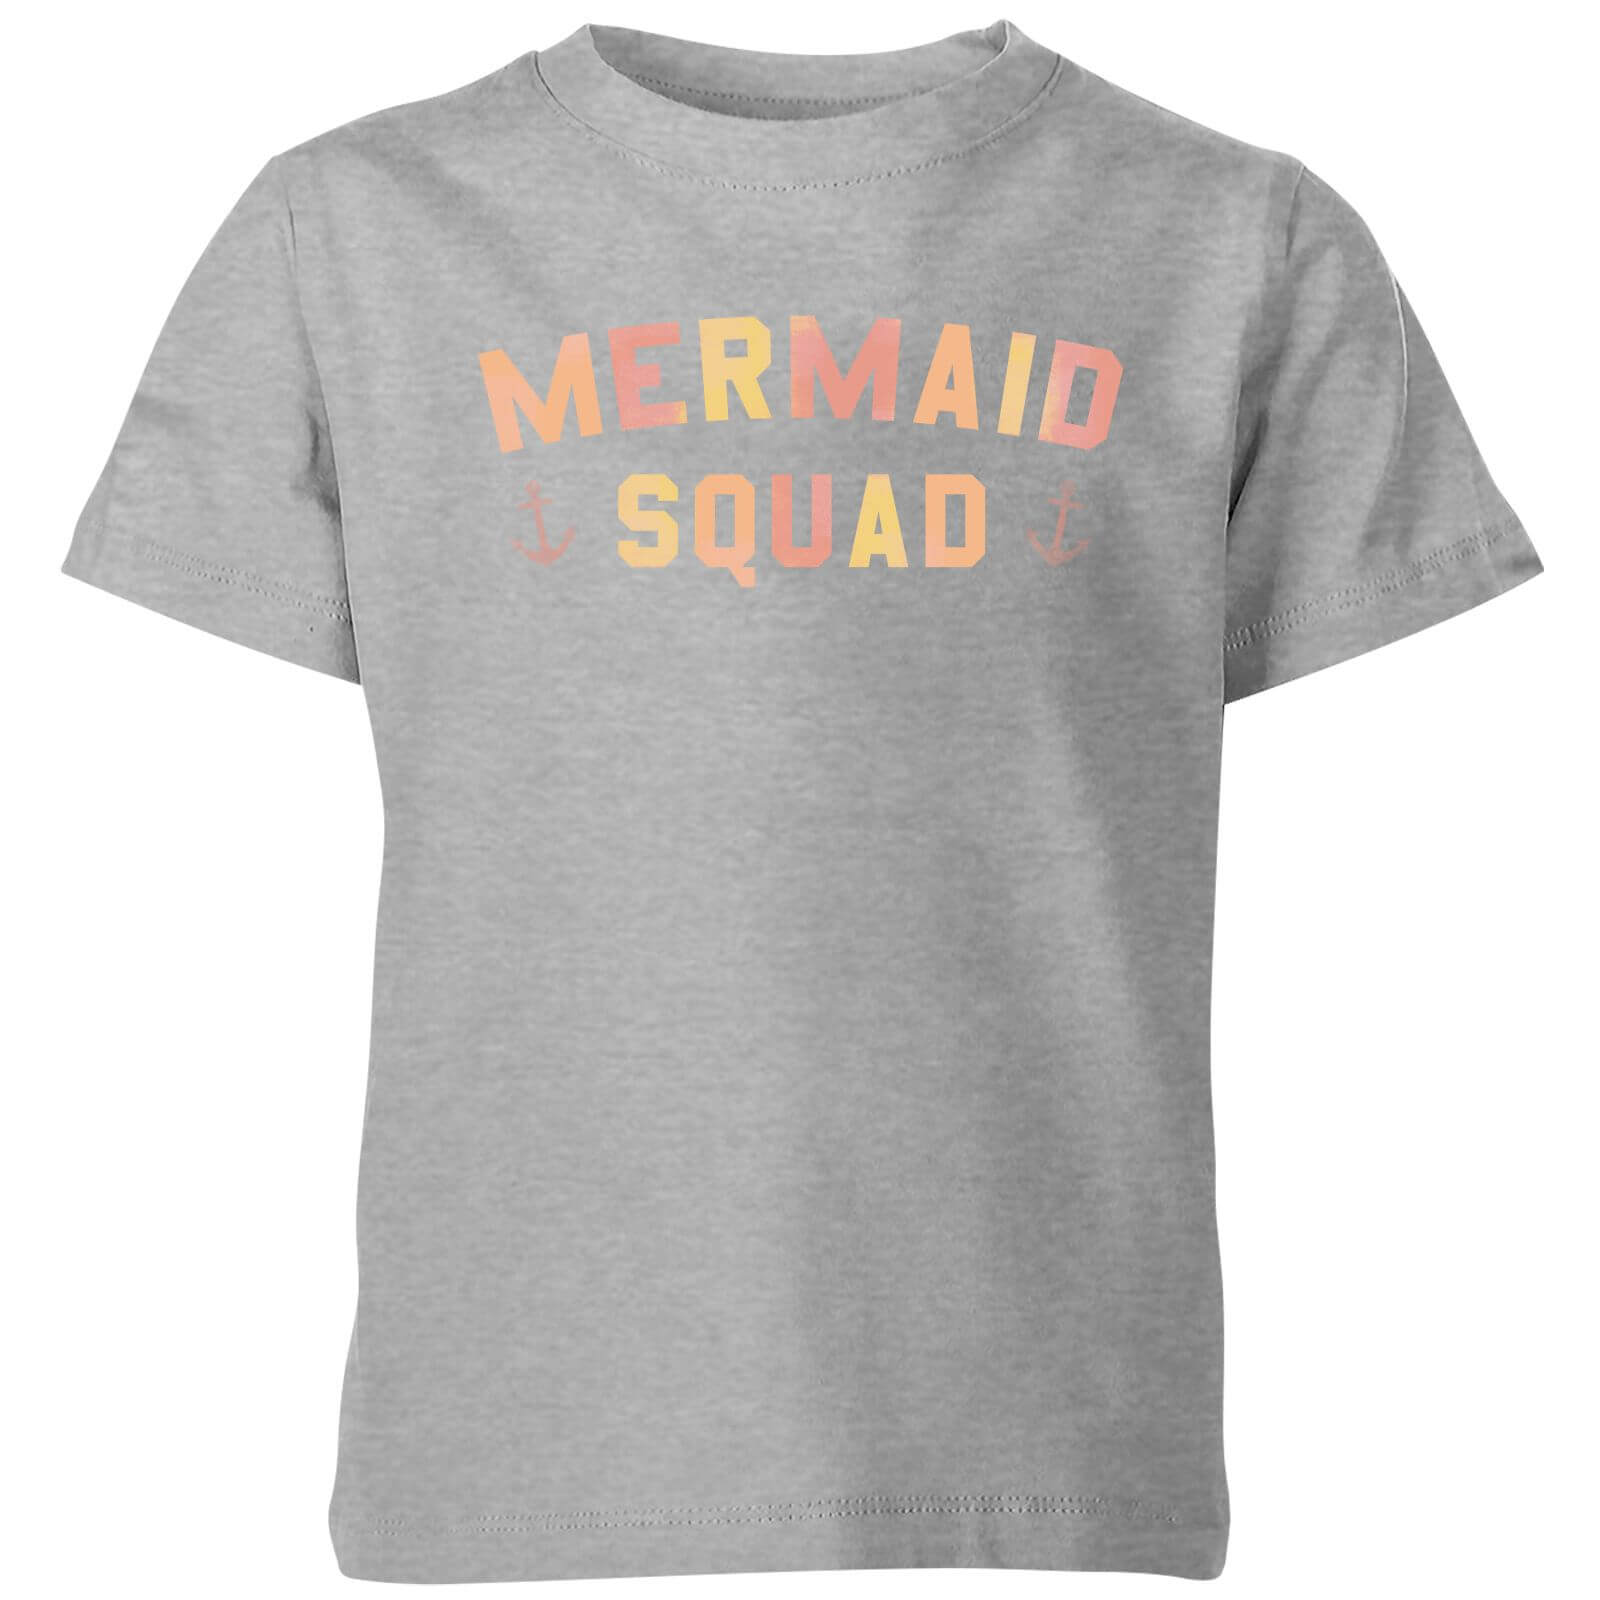 My Little Rascal Mermaid Squad Kids